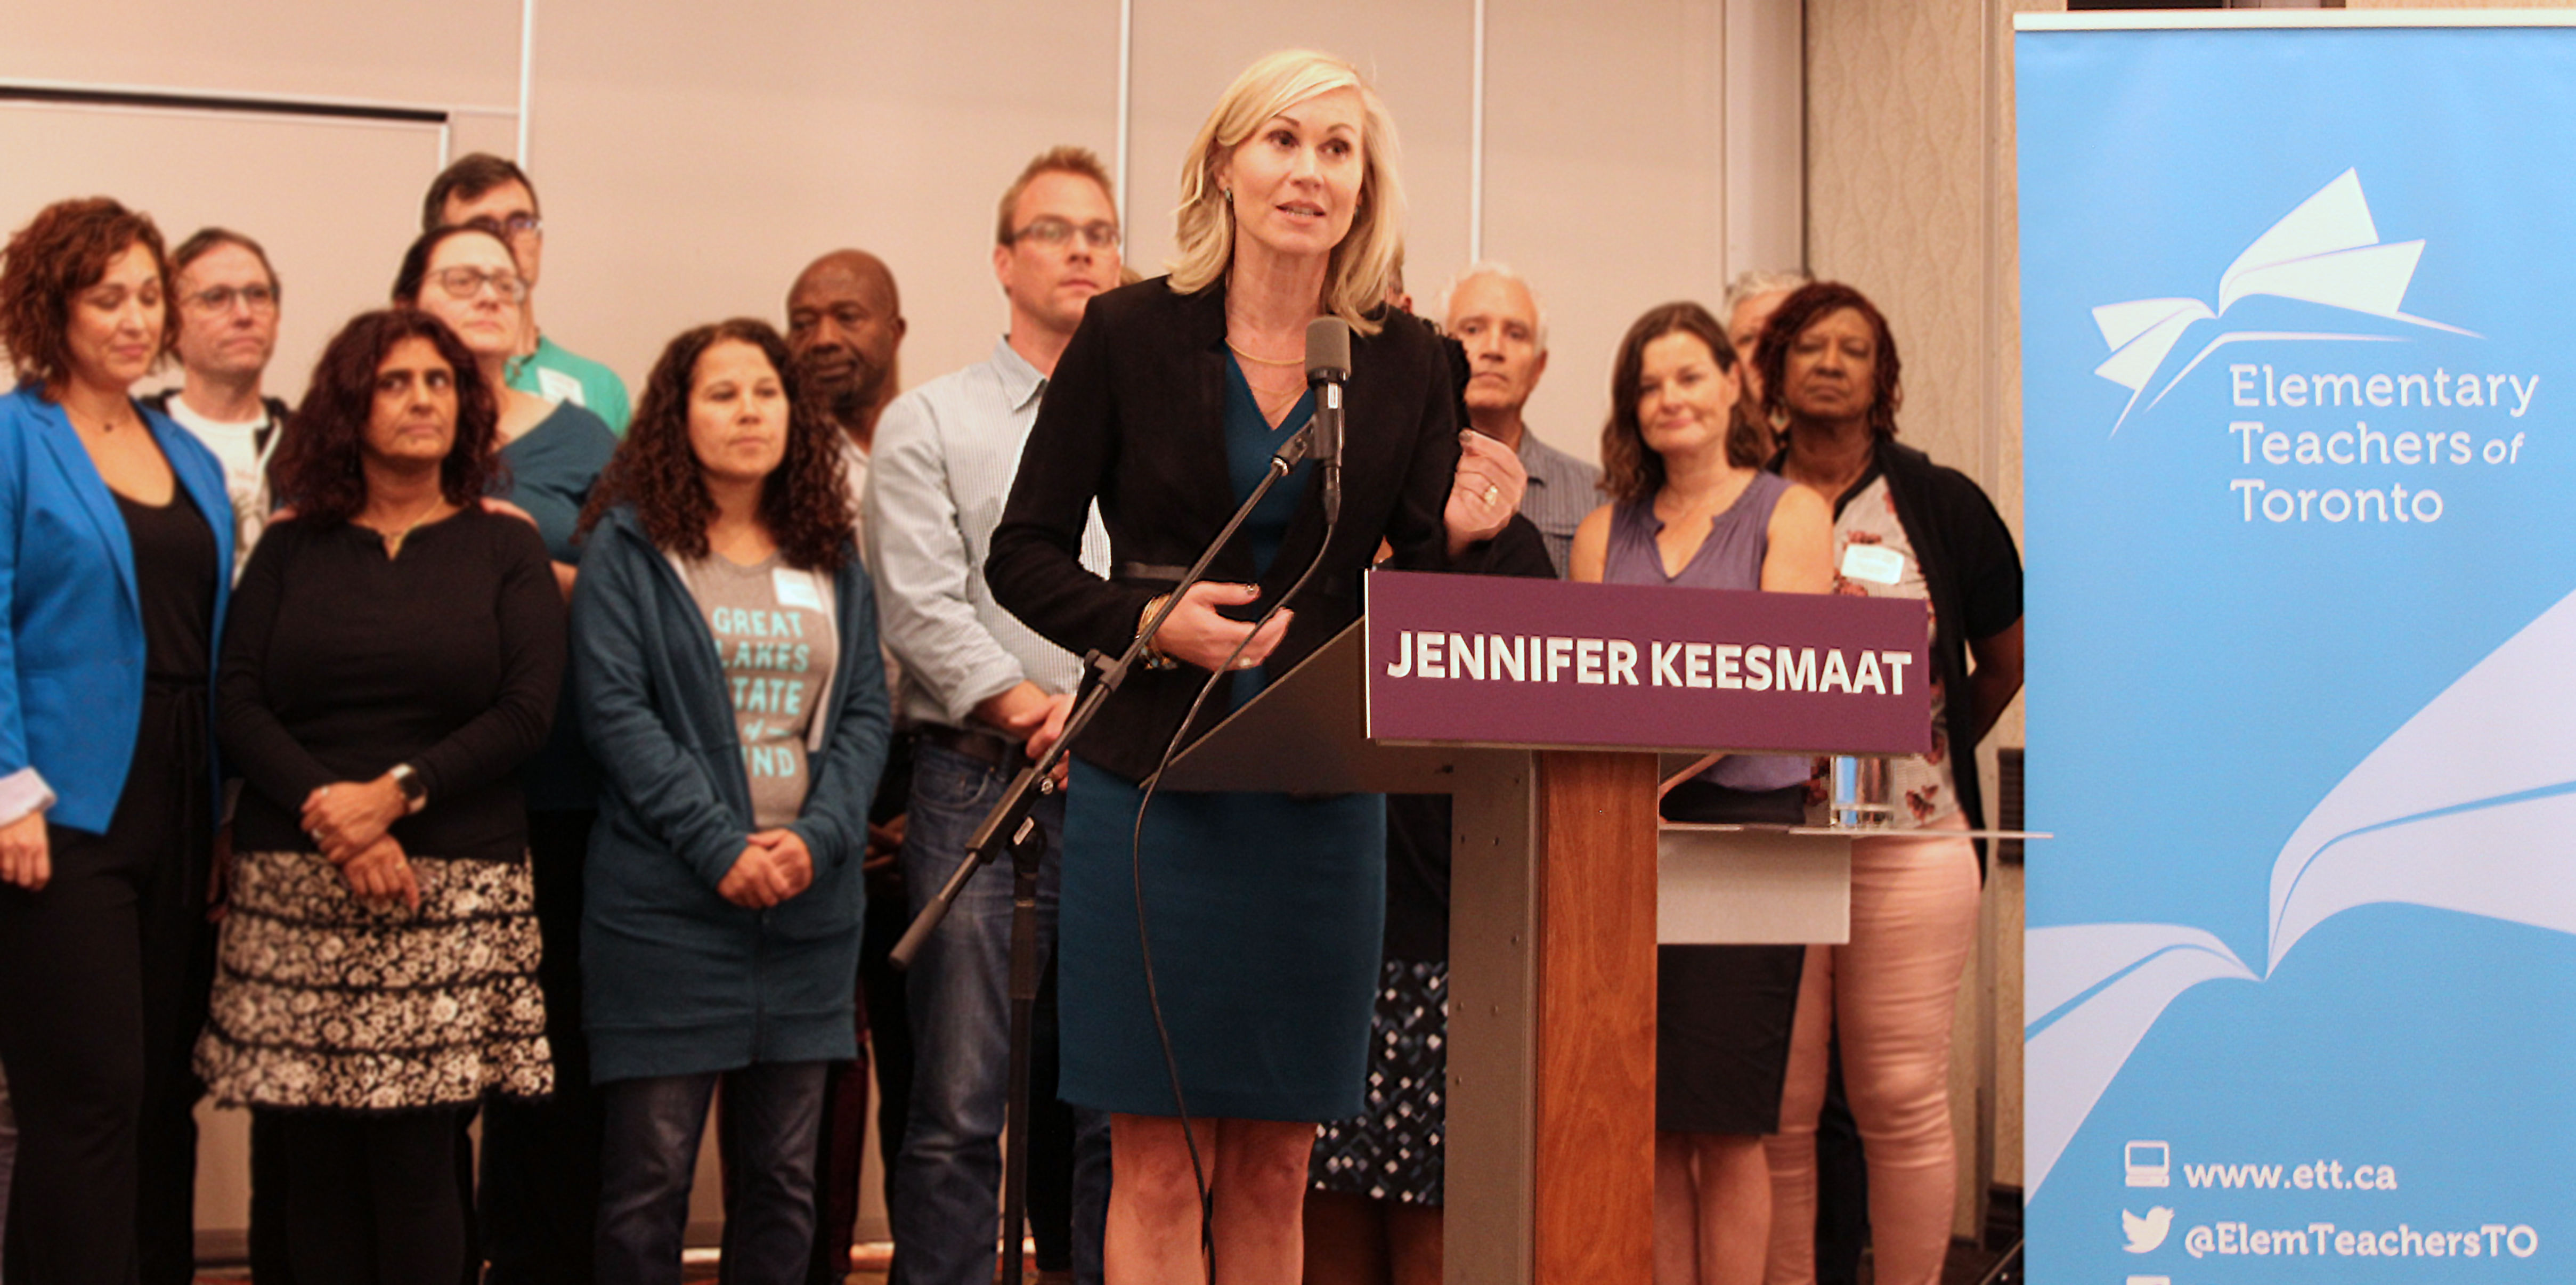 #Keesmaat4Mayor: A Message from ETT President Lachica